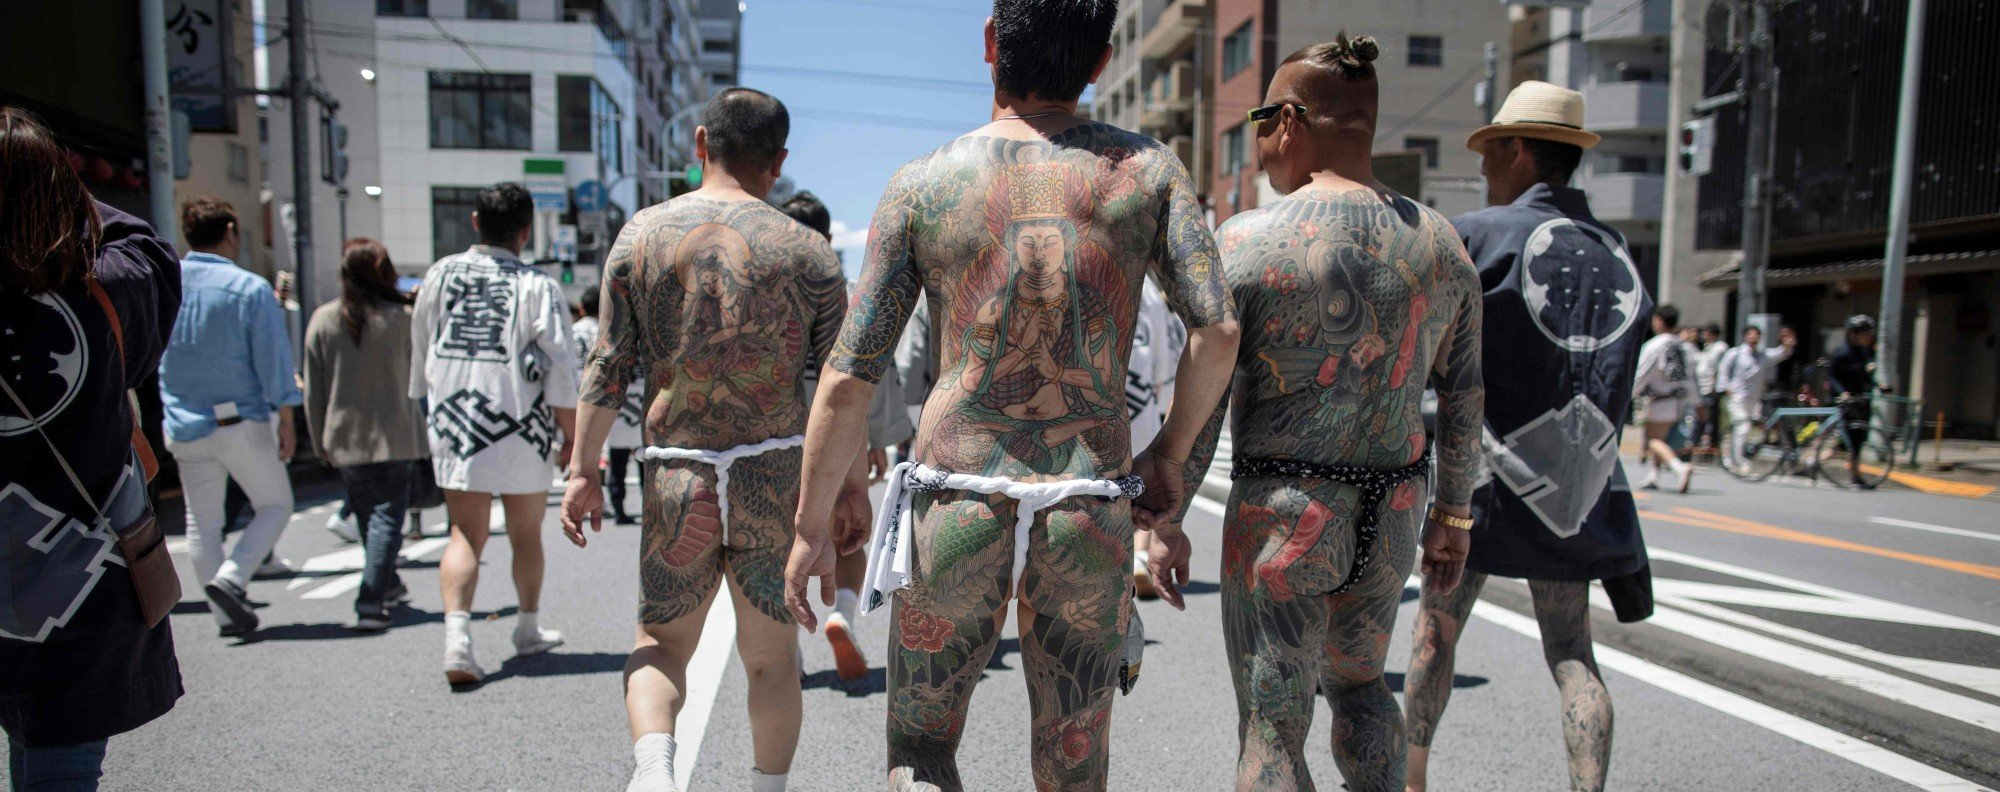 In Japan, tattoos are associated with yakuza. Photo: AFP